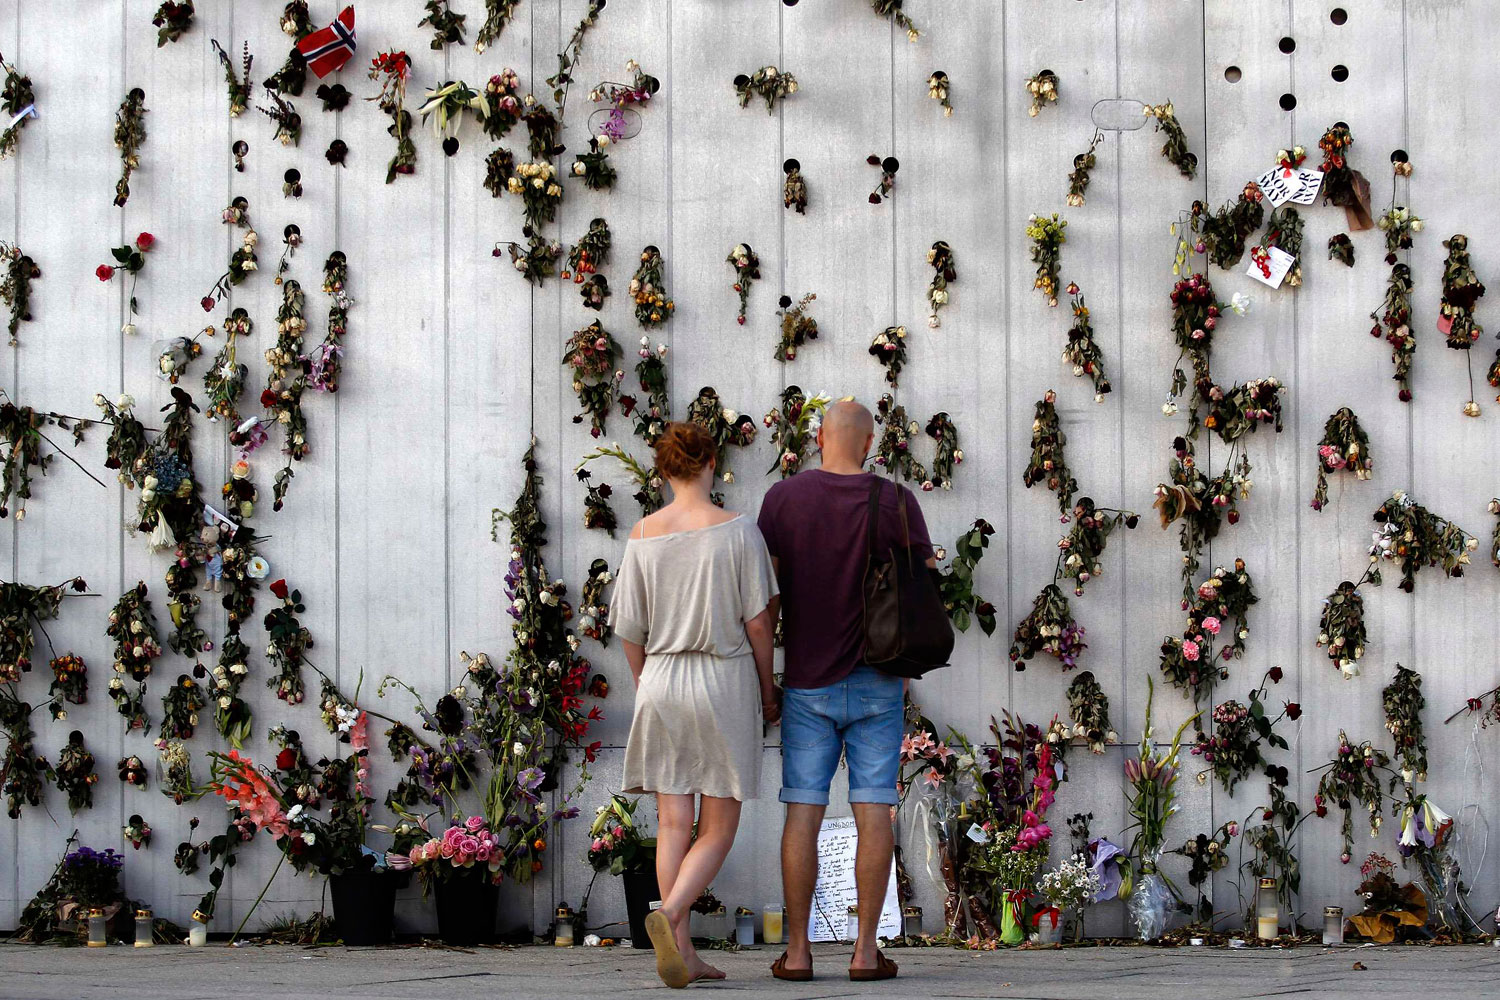 July 29, 2011. A couple stands in front of a wall decorated with flowers in memory of the victims of the previous week's attacks, in Oslo. Norwegians united in mourning as the first funerals were held a week after anti-Islam zealot Anders Behring Breivik massacred 77 people in attacks that traumatized the nation.